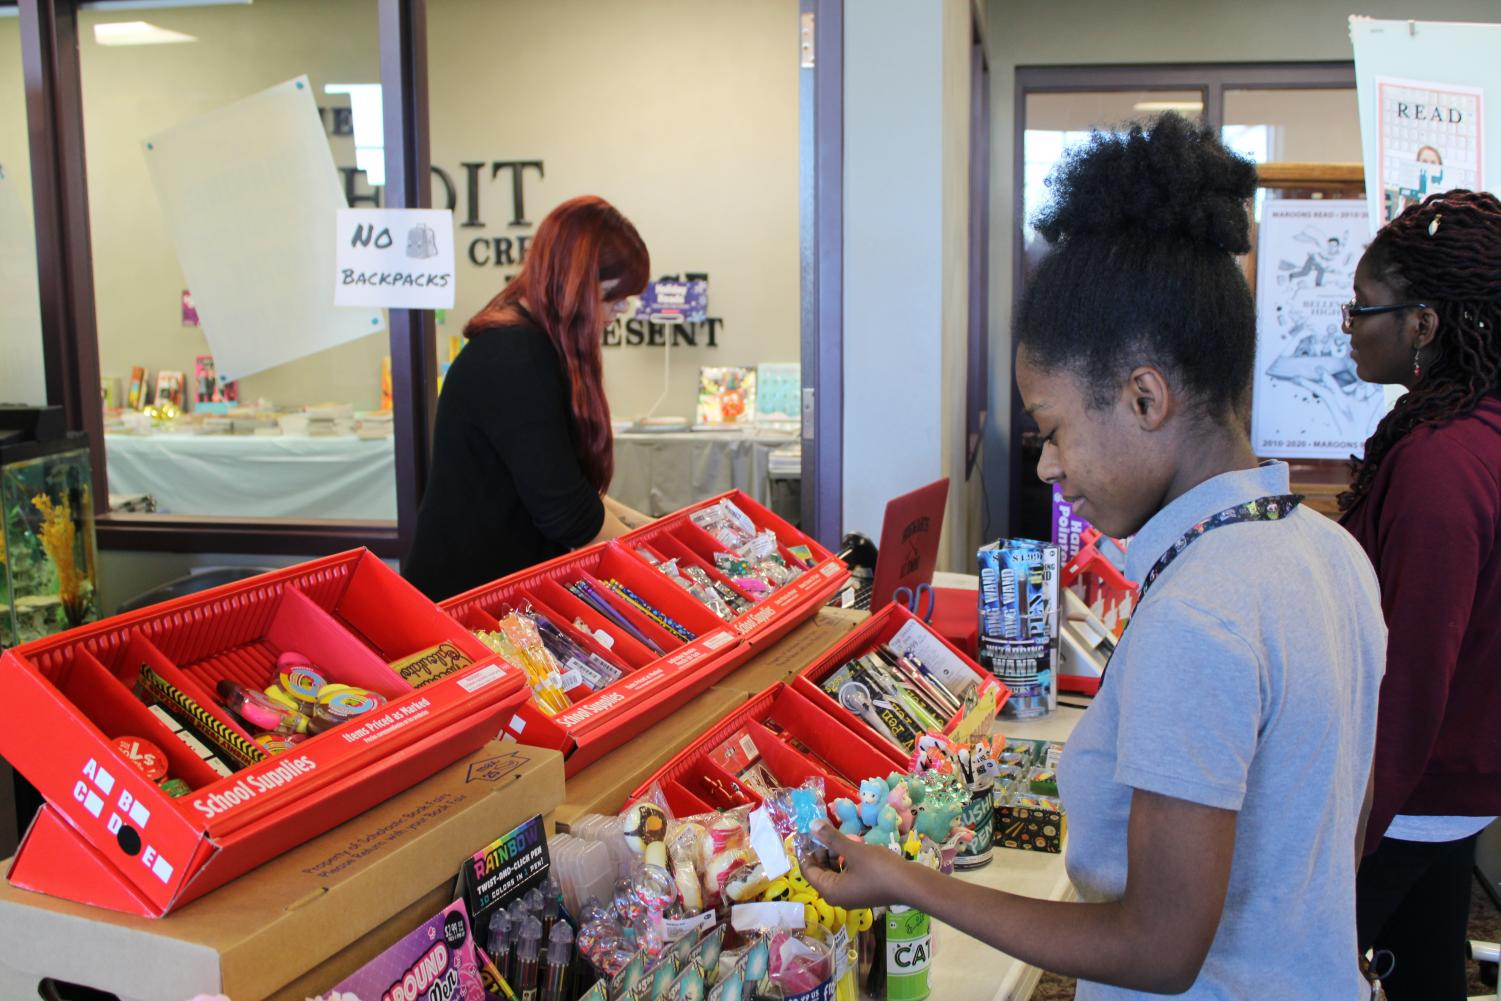 Scholastic Book Fair Brings in New Books for West